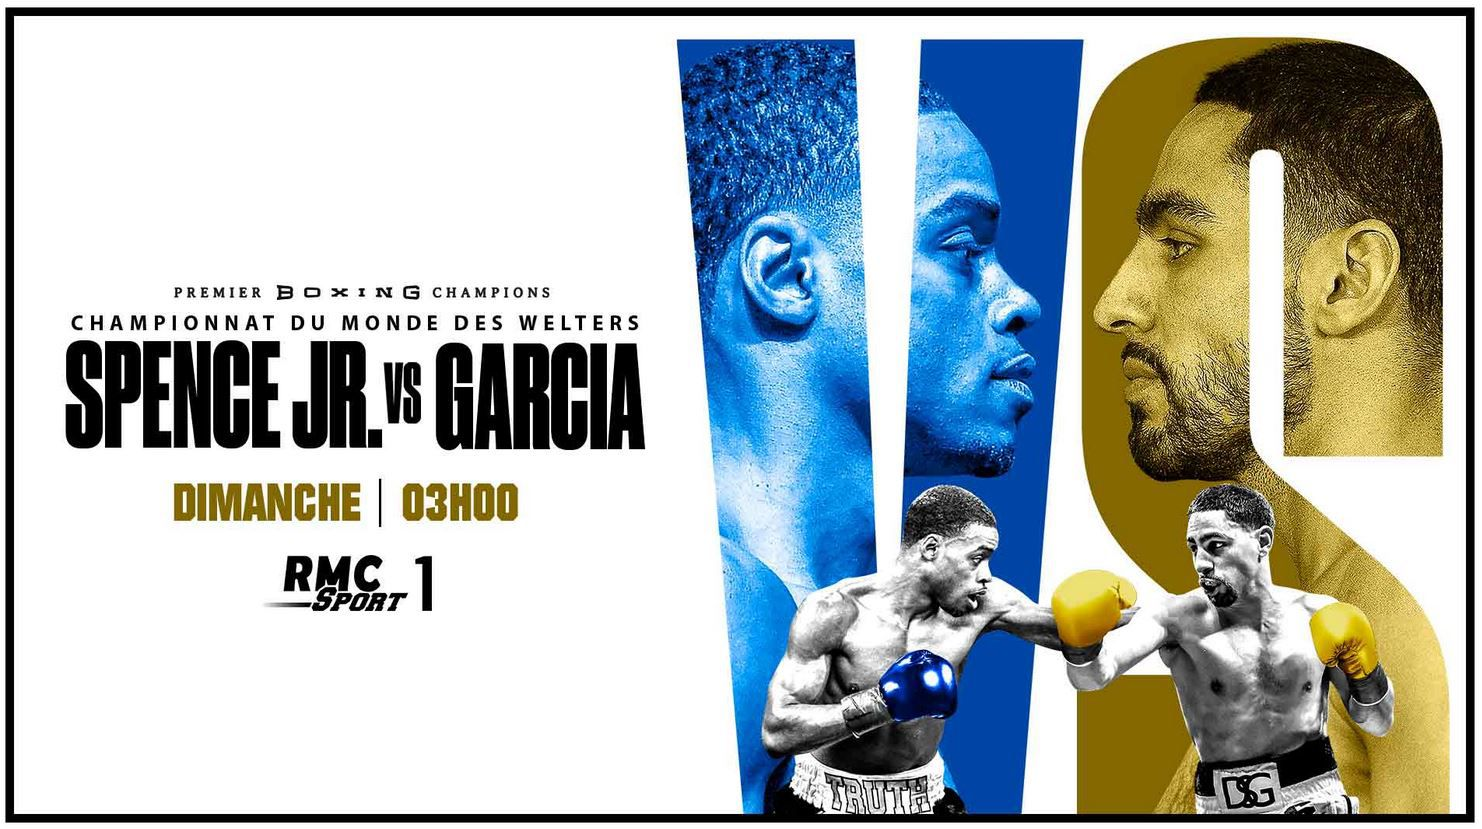 Errol Spence Jr. vs Danny Garcia et No Limit XIV en direct samedi sur RMC Sport !